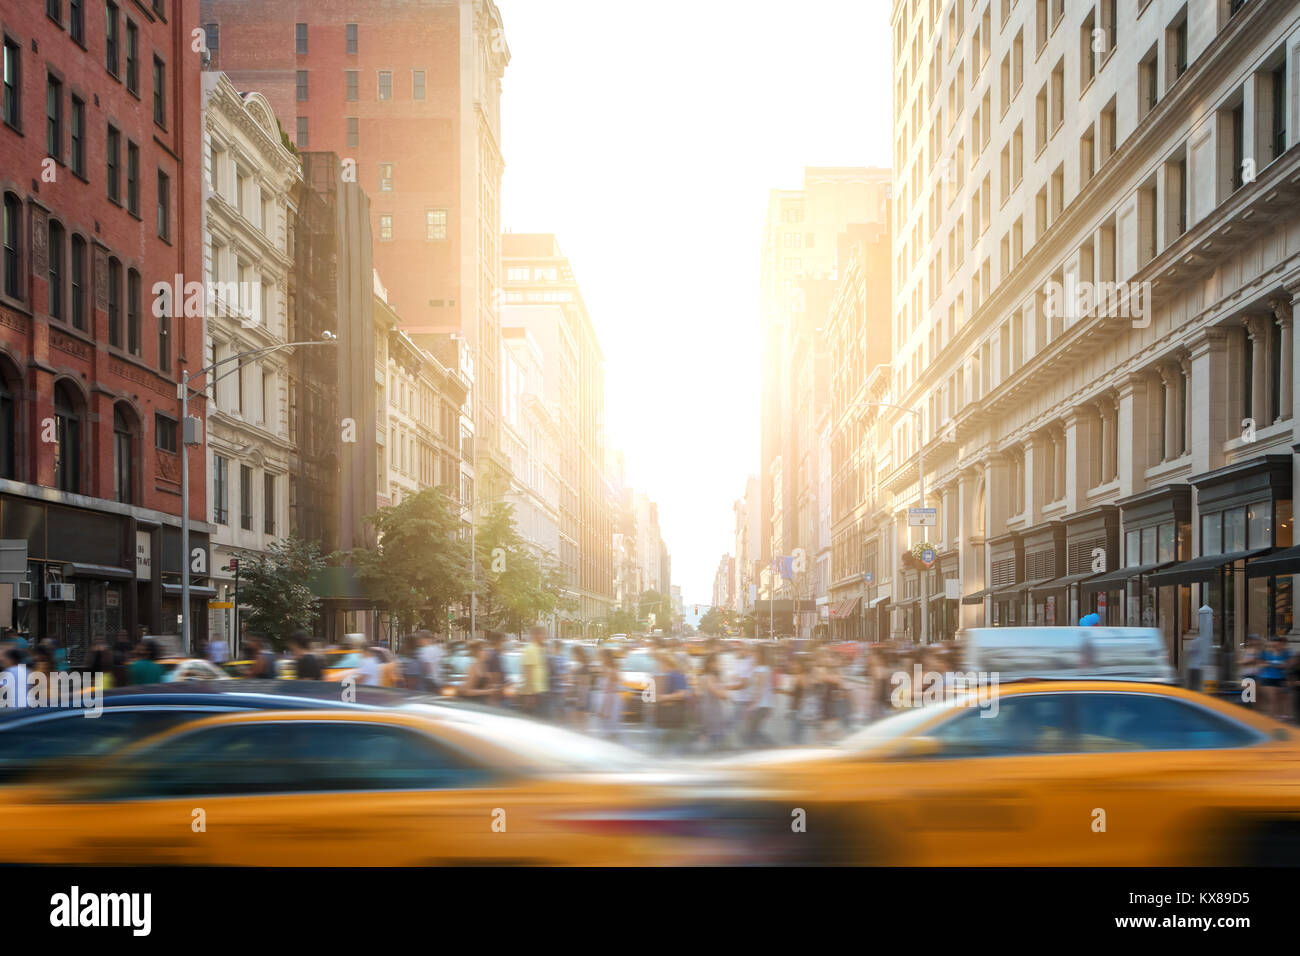 Fast paced motion in New York City as yellow taxi cabs speed down 5th Avenue with crowds of busy people walking - Stock Image